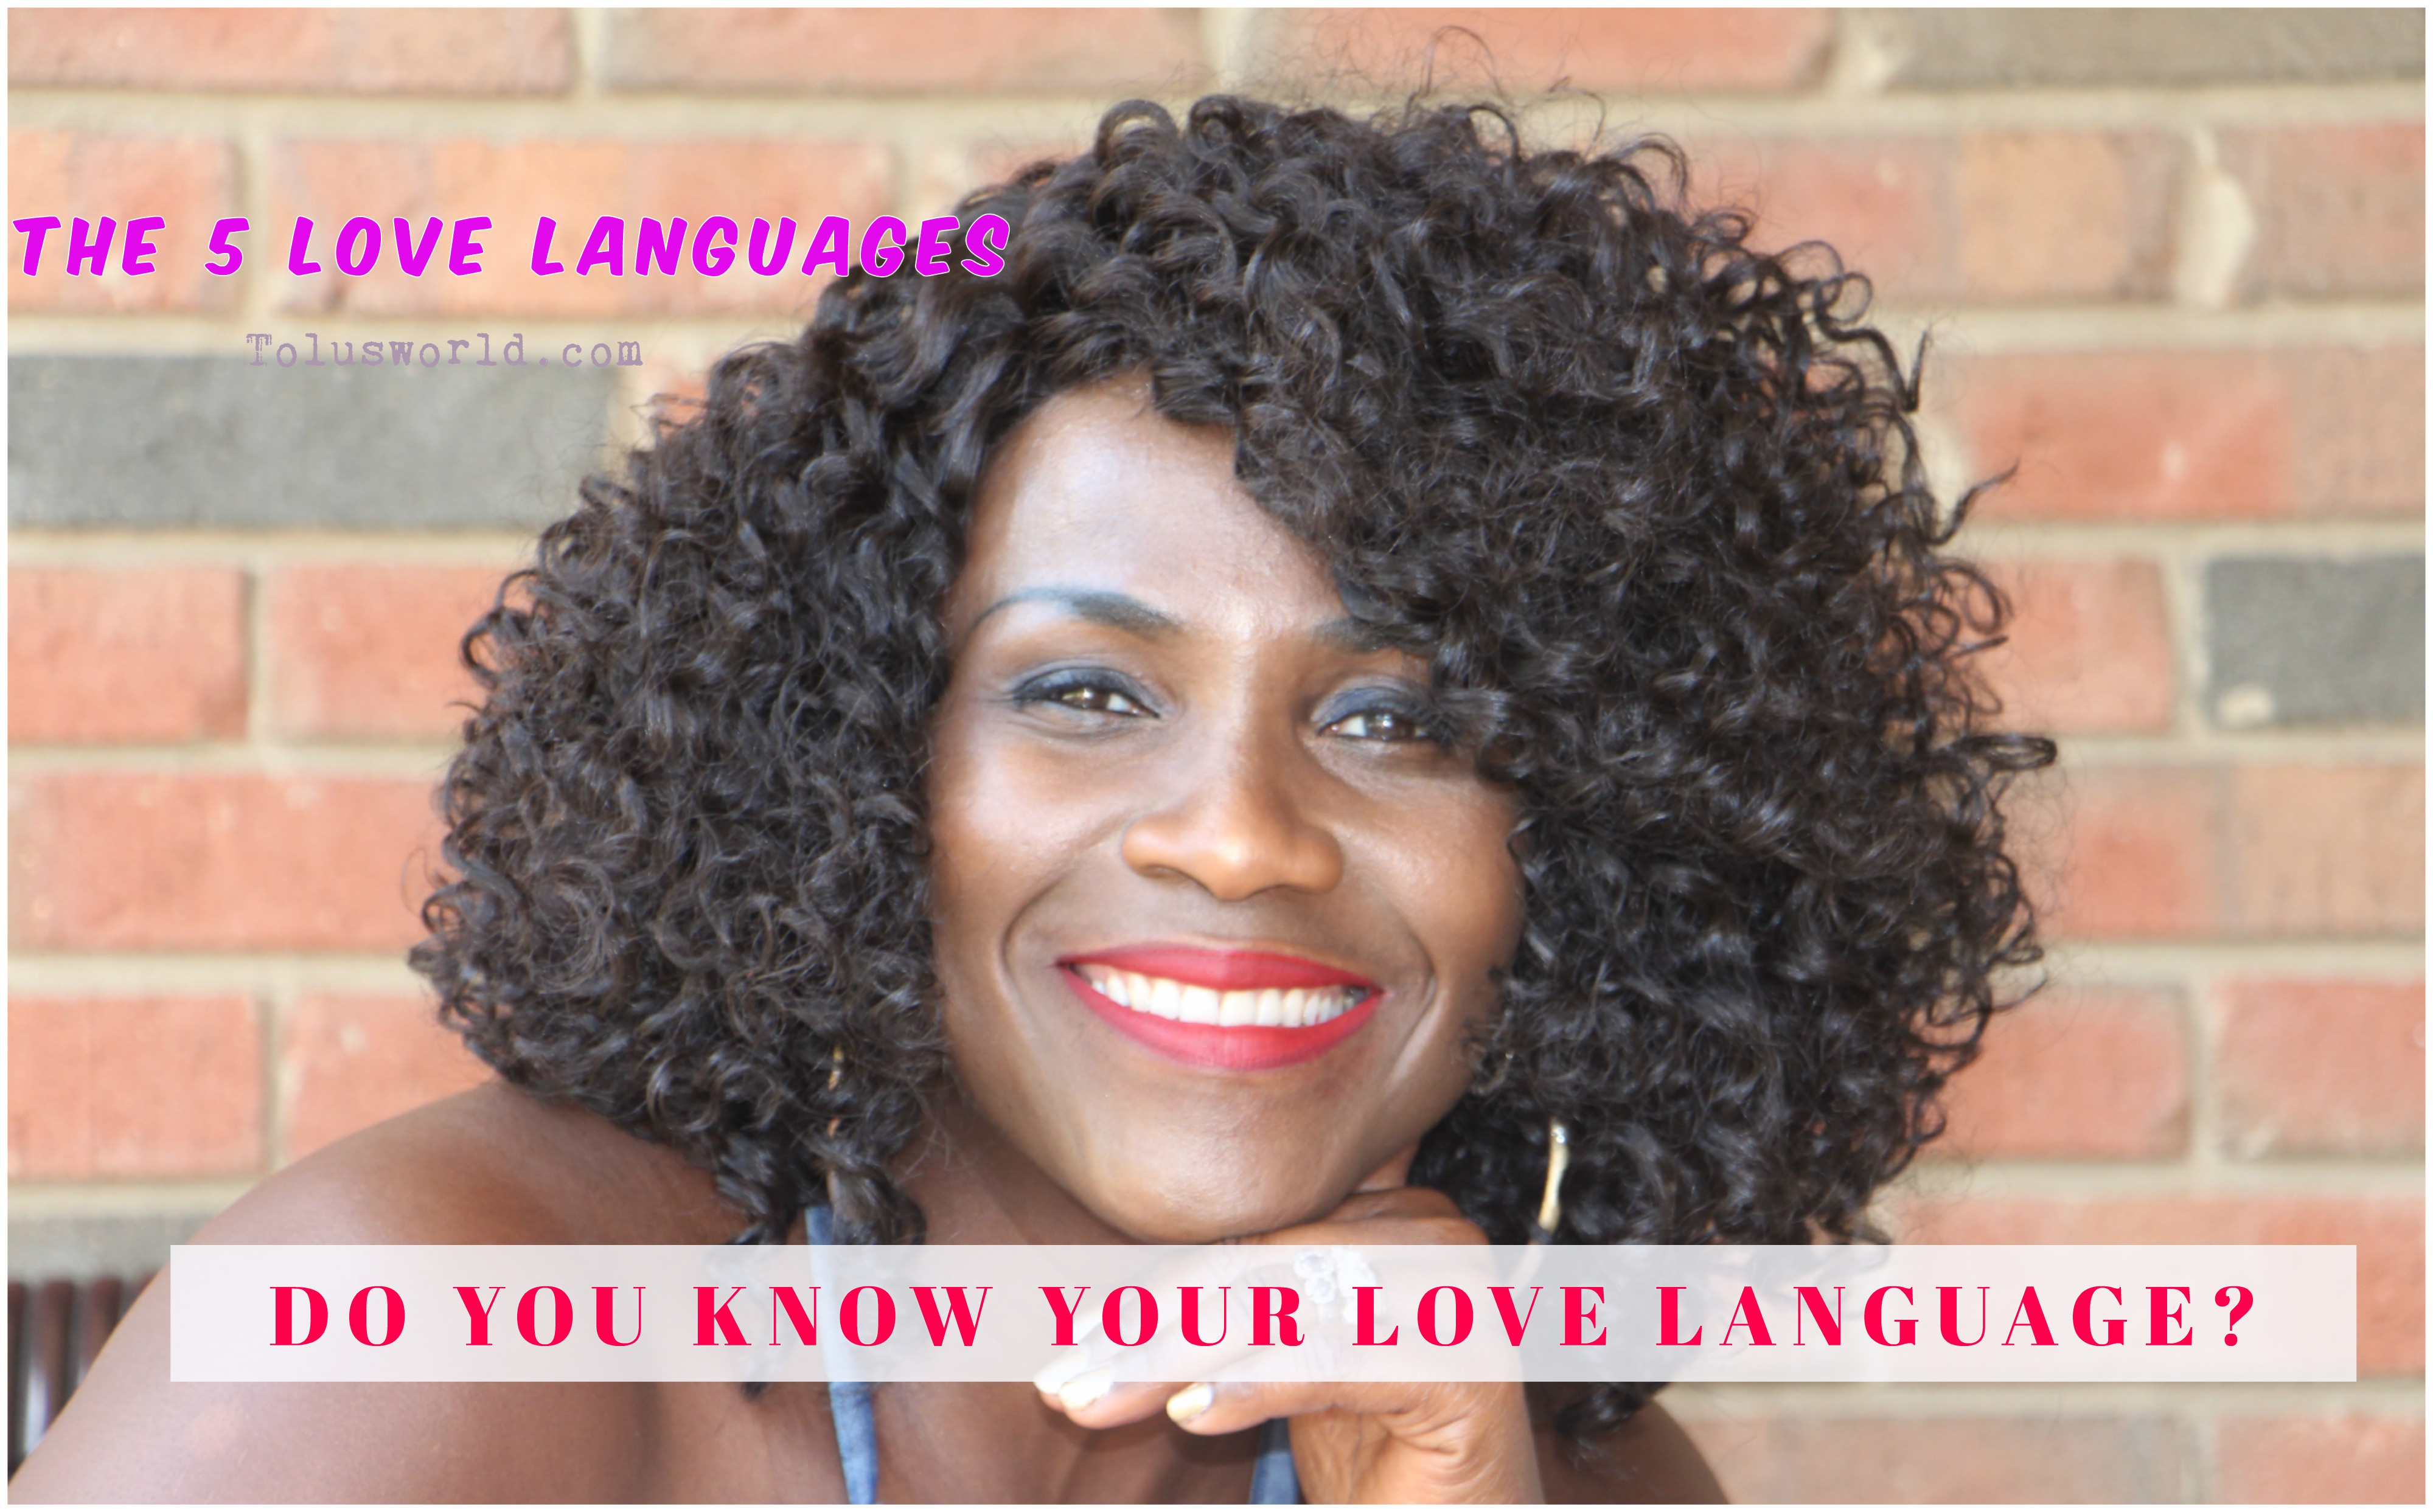 UNFUFILLED HUSBAND- Do You Know Your Wife's Love Language? The 5 Love Languages